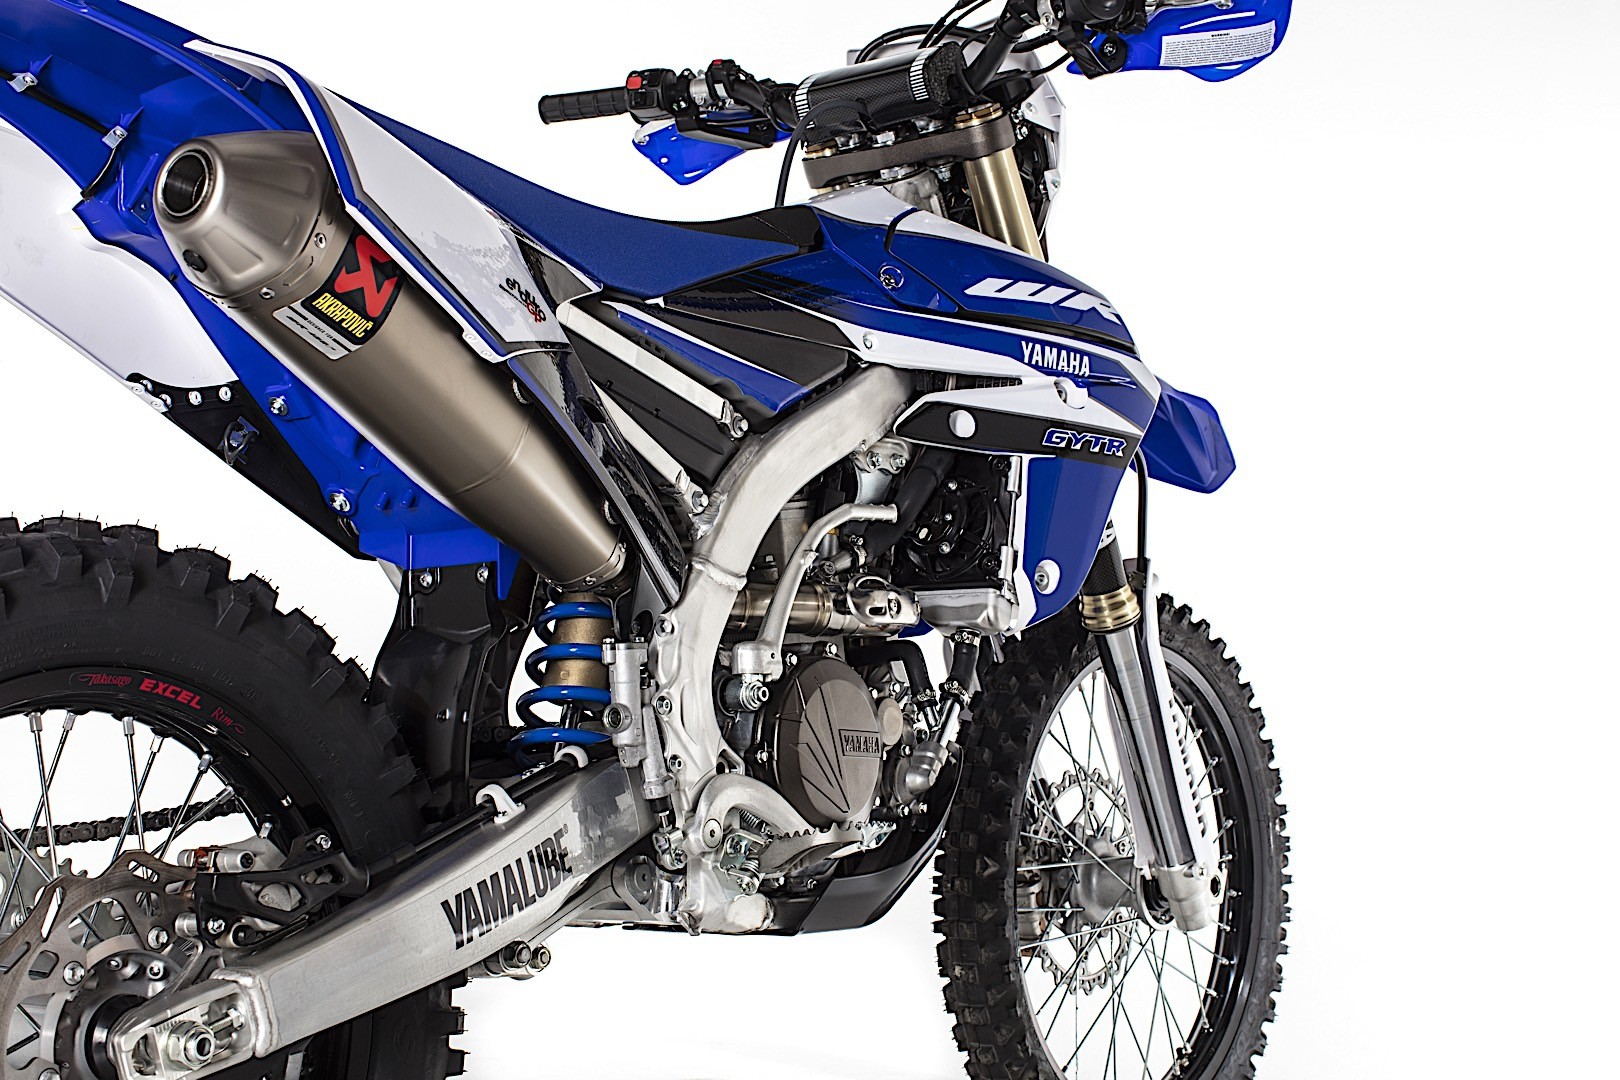 2018 yamaha wr450f and wr250f endorogp special editions revealed autoevolution. Black Bedroom Furniture Sets. Home Design Ideas